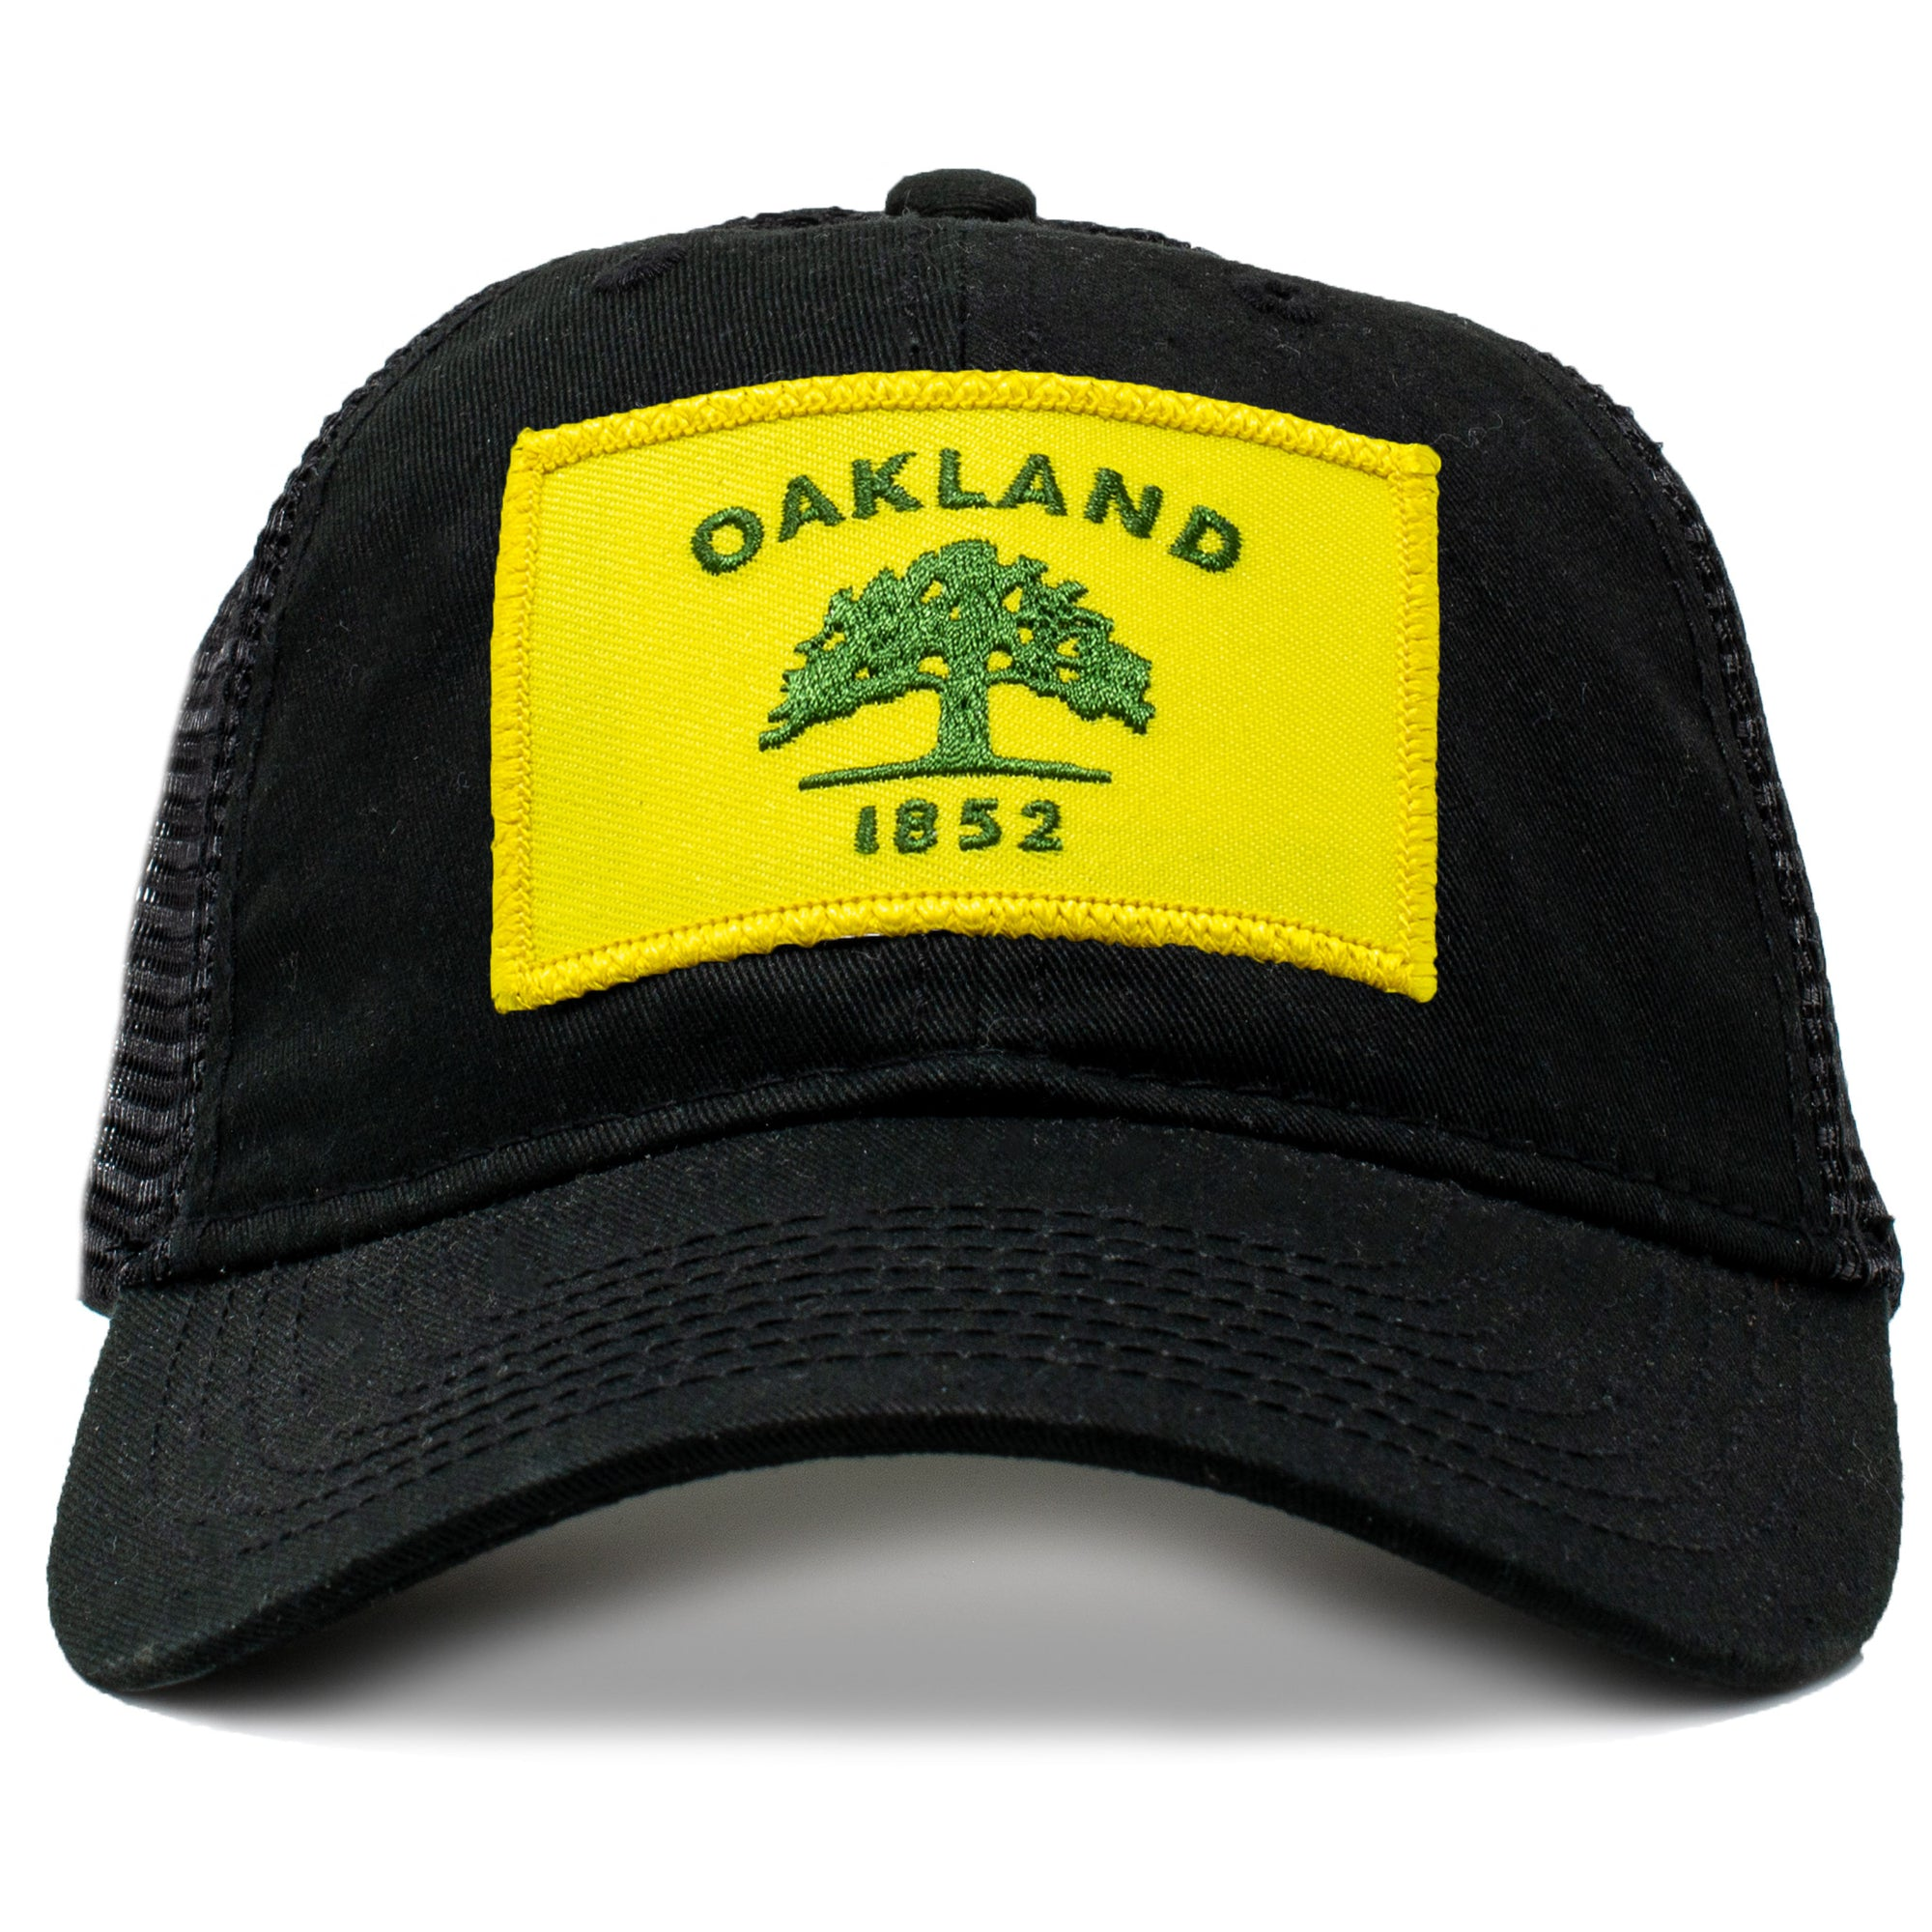 Oakland California flag trucker hat